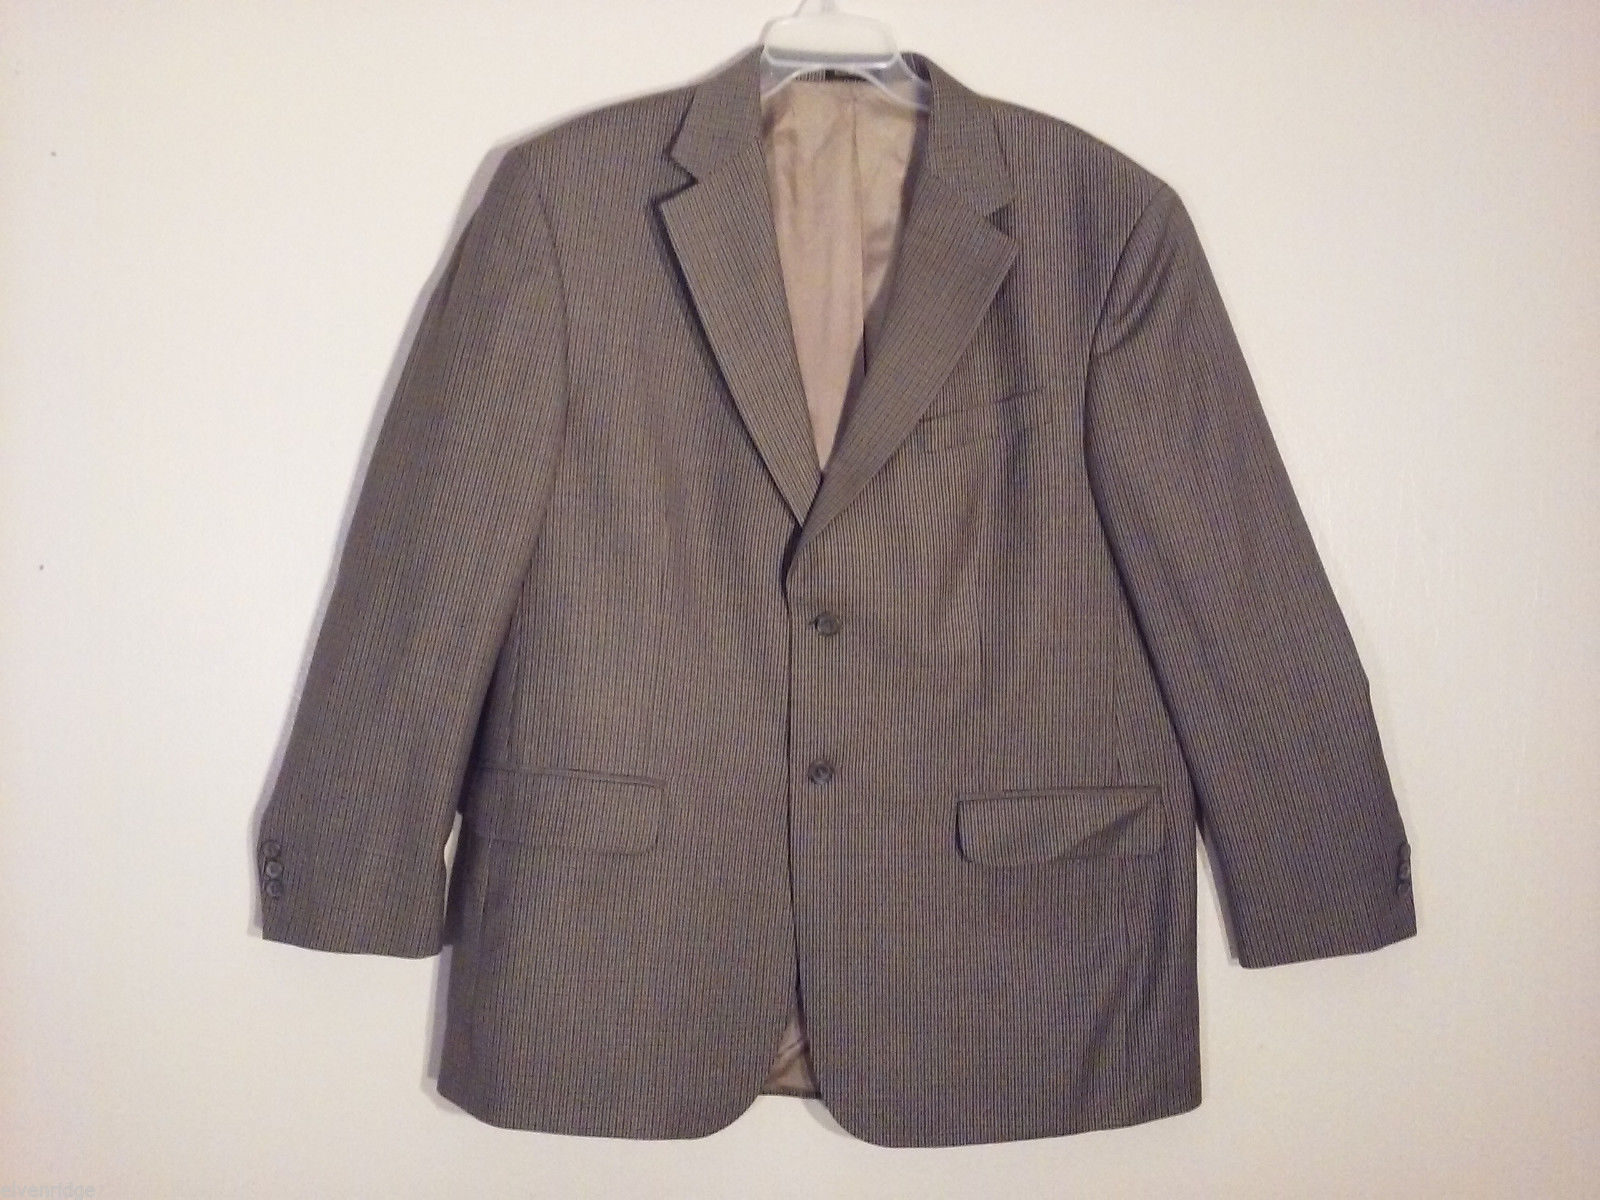 Stafford Men's Size XL Blazer Sport Coat Tiny Houndstooth Print Beige Gray Brown